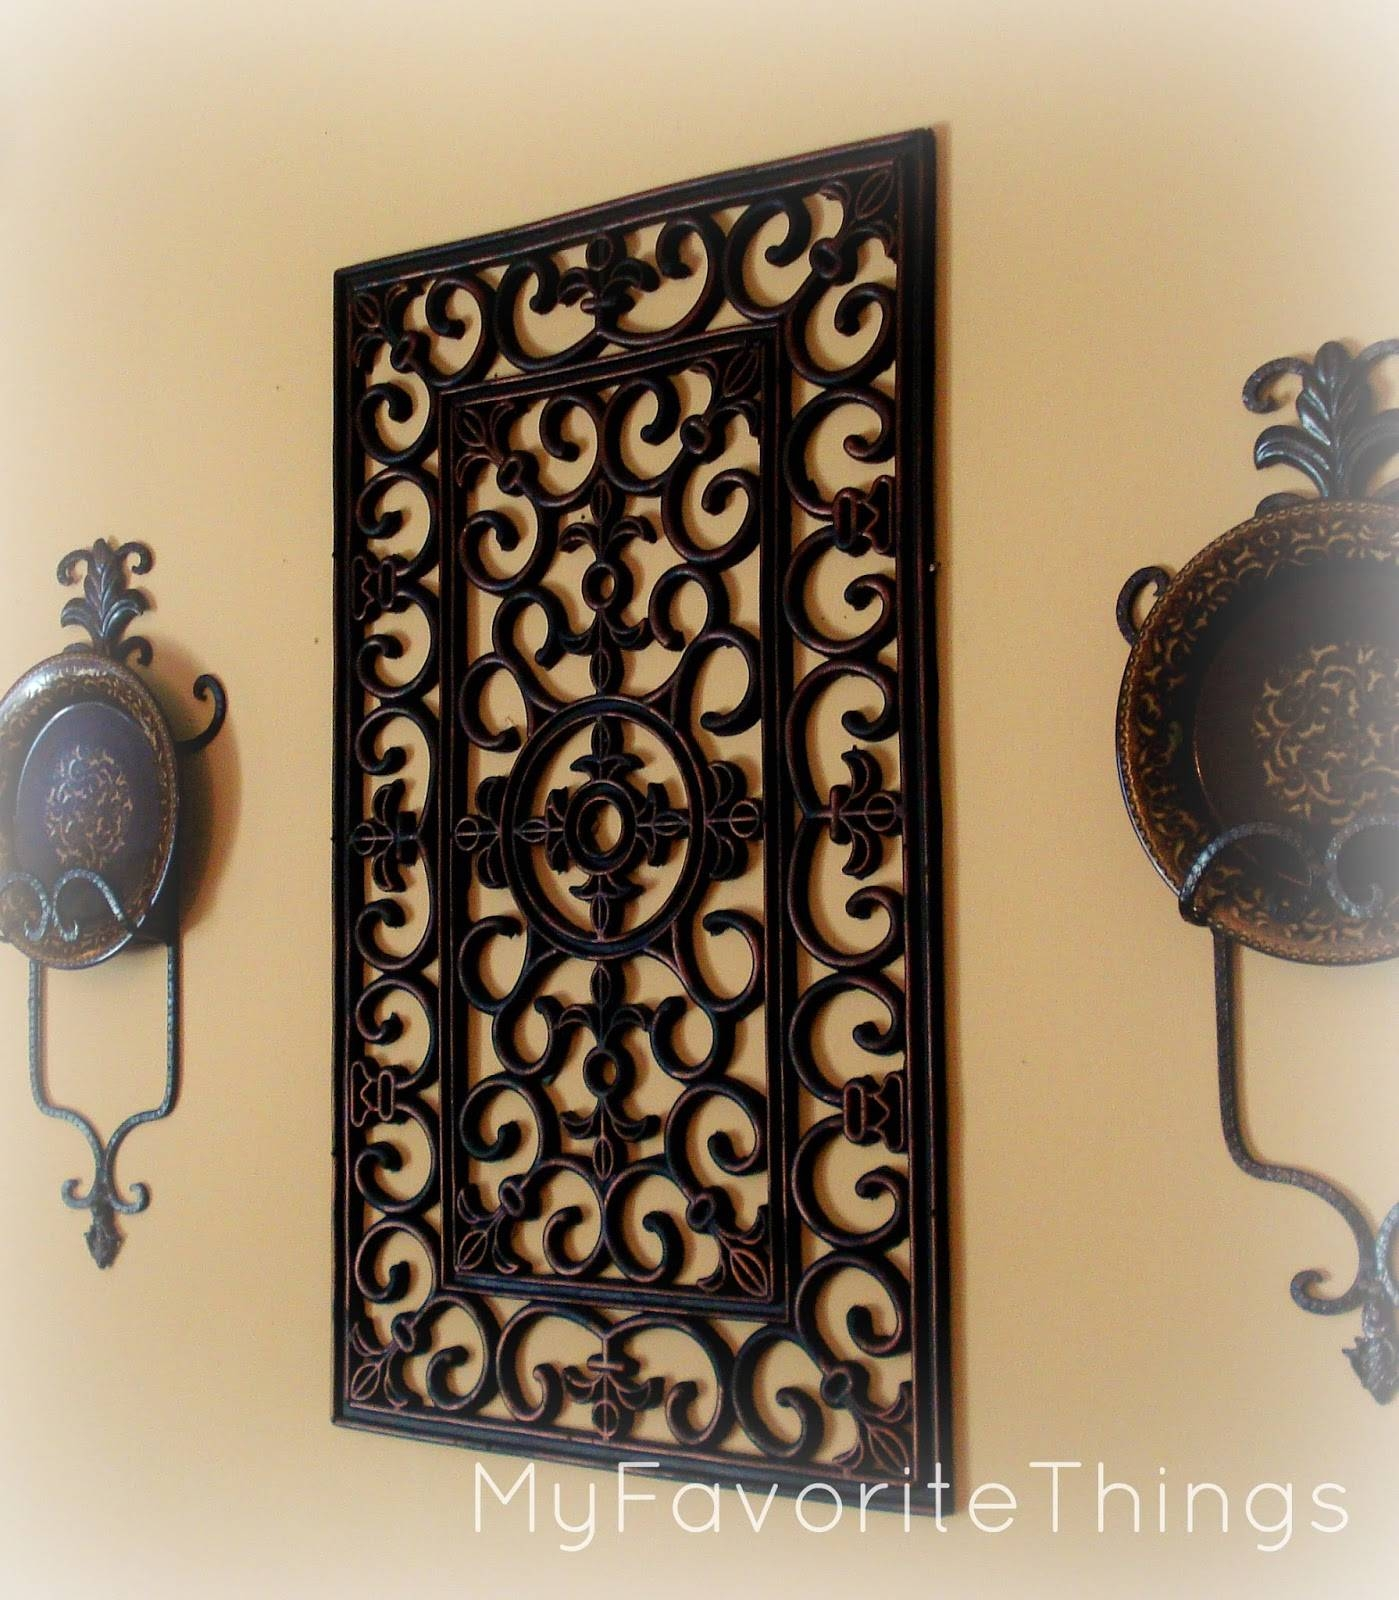 Wall Decor: Top 20 Rustic Wrought Iron Wall Decor How To Hang With Regard To Current Tuscan Wrought Iron Wall Art (View 9 of 20)